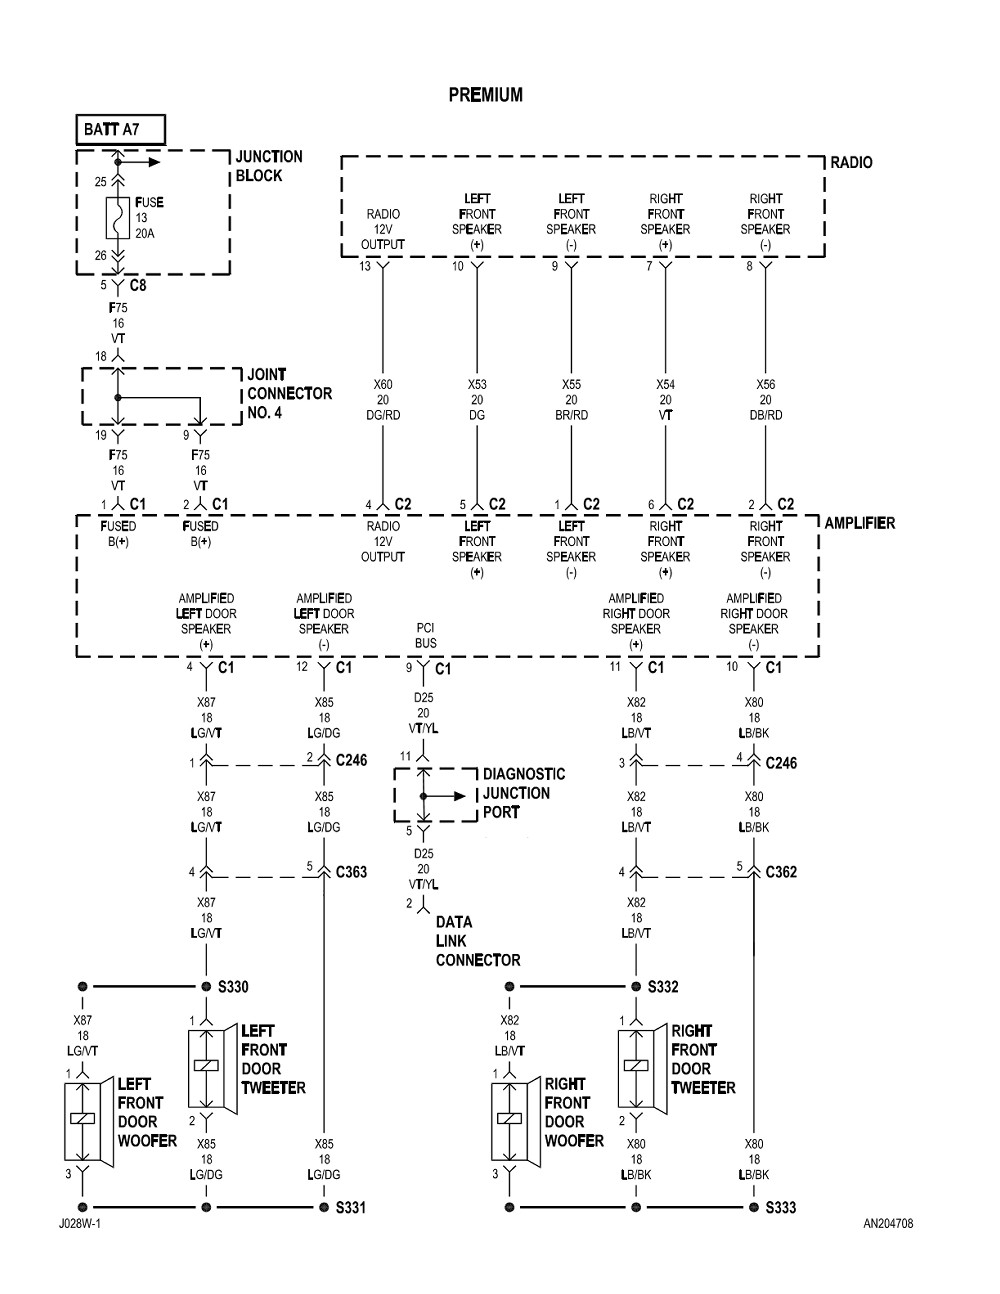 2003 dodge dakota radio wiring diagram Download-2006 Dodge Dakota Radio  Wiring Diagram Wiring Library